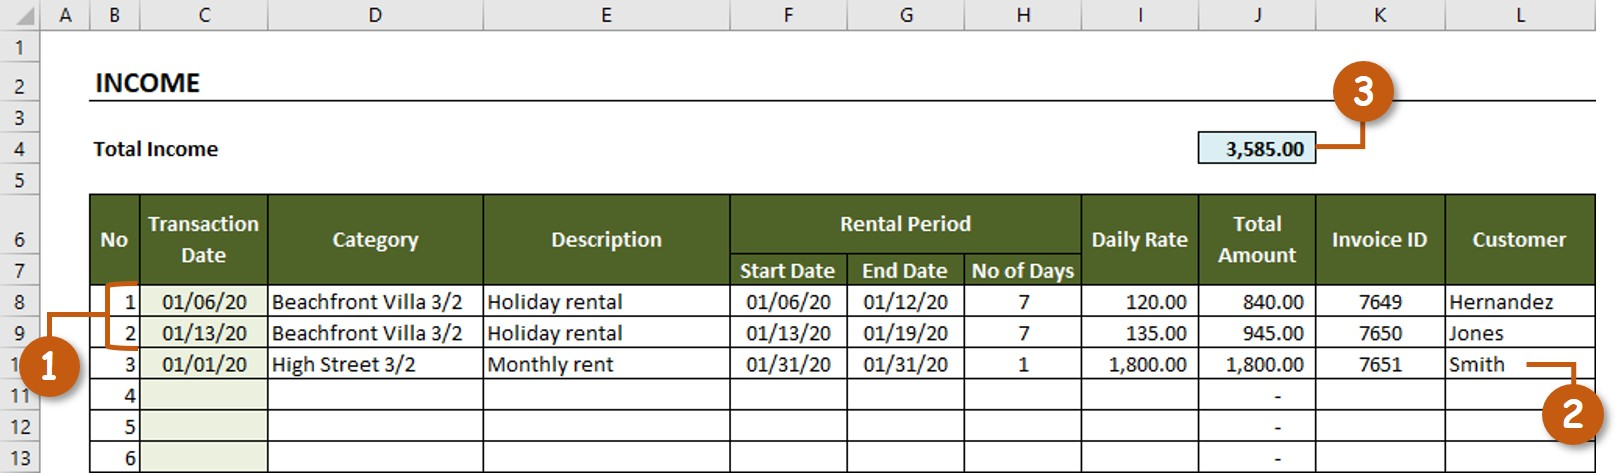 Rental Property Income Expenses Example